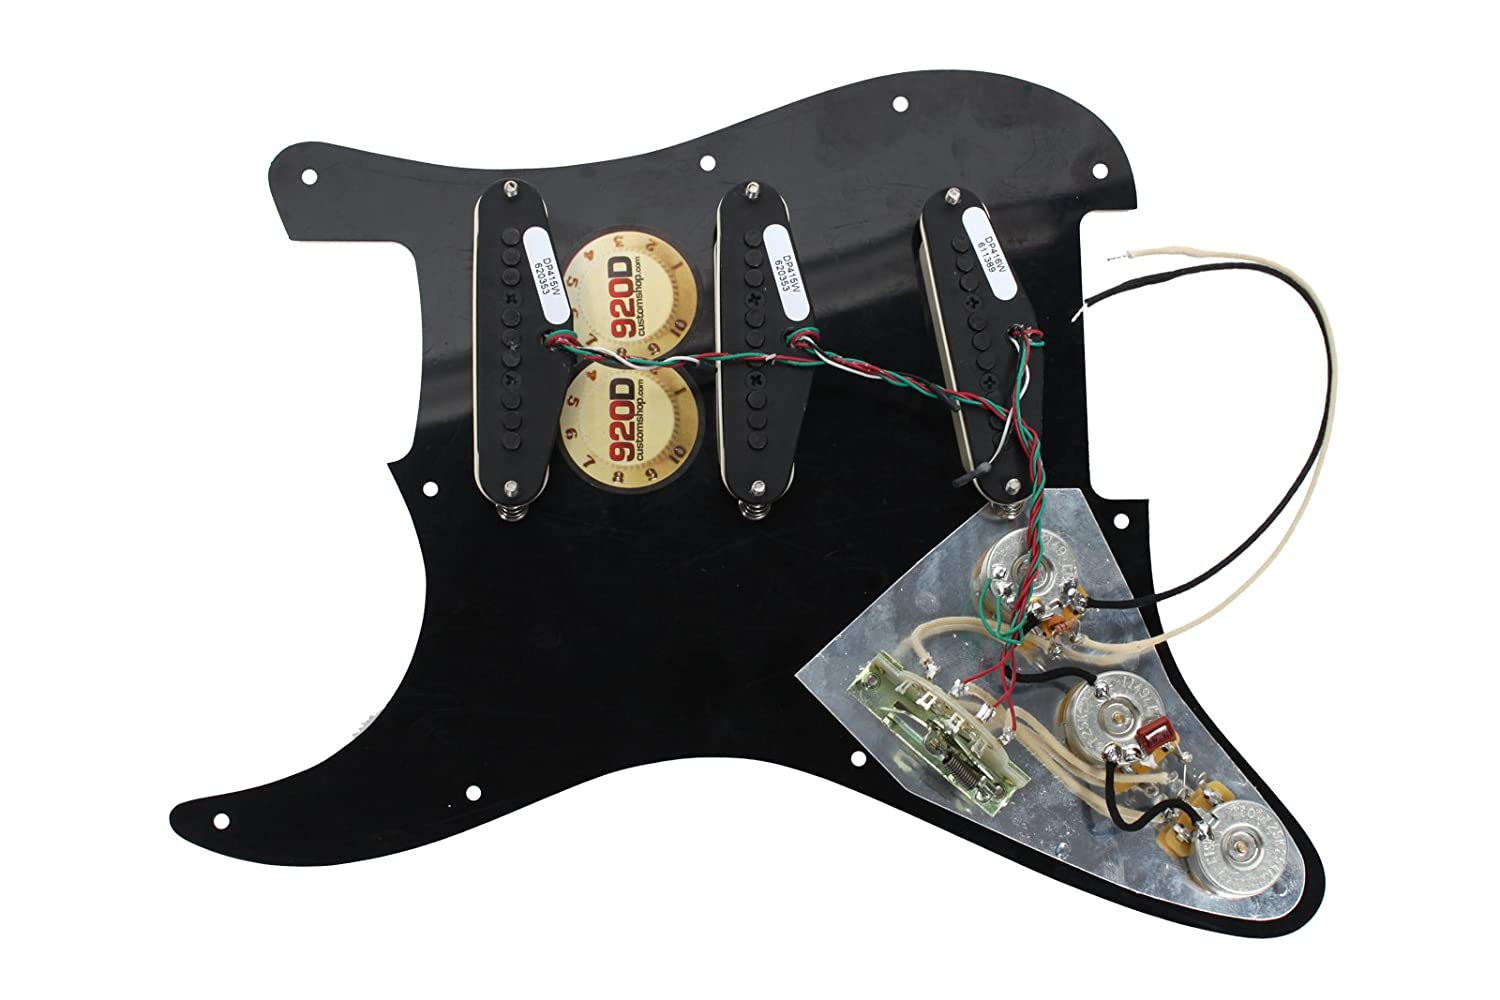 Wiring Diagram Lincoln Brewster Library Gibson Ripper Bass On Vintage Les Paul Guitar Amazoncom Dimarzio Area 58 61 Loaded Pickguard Prewired To